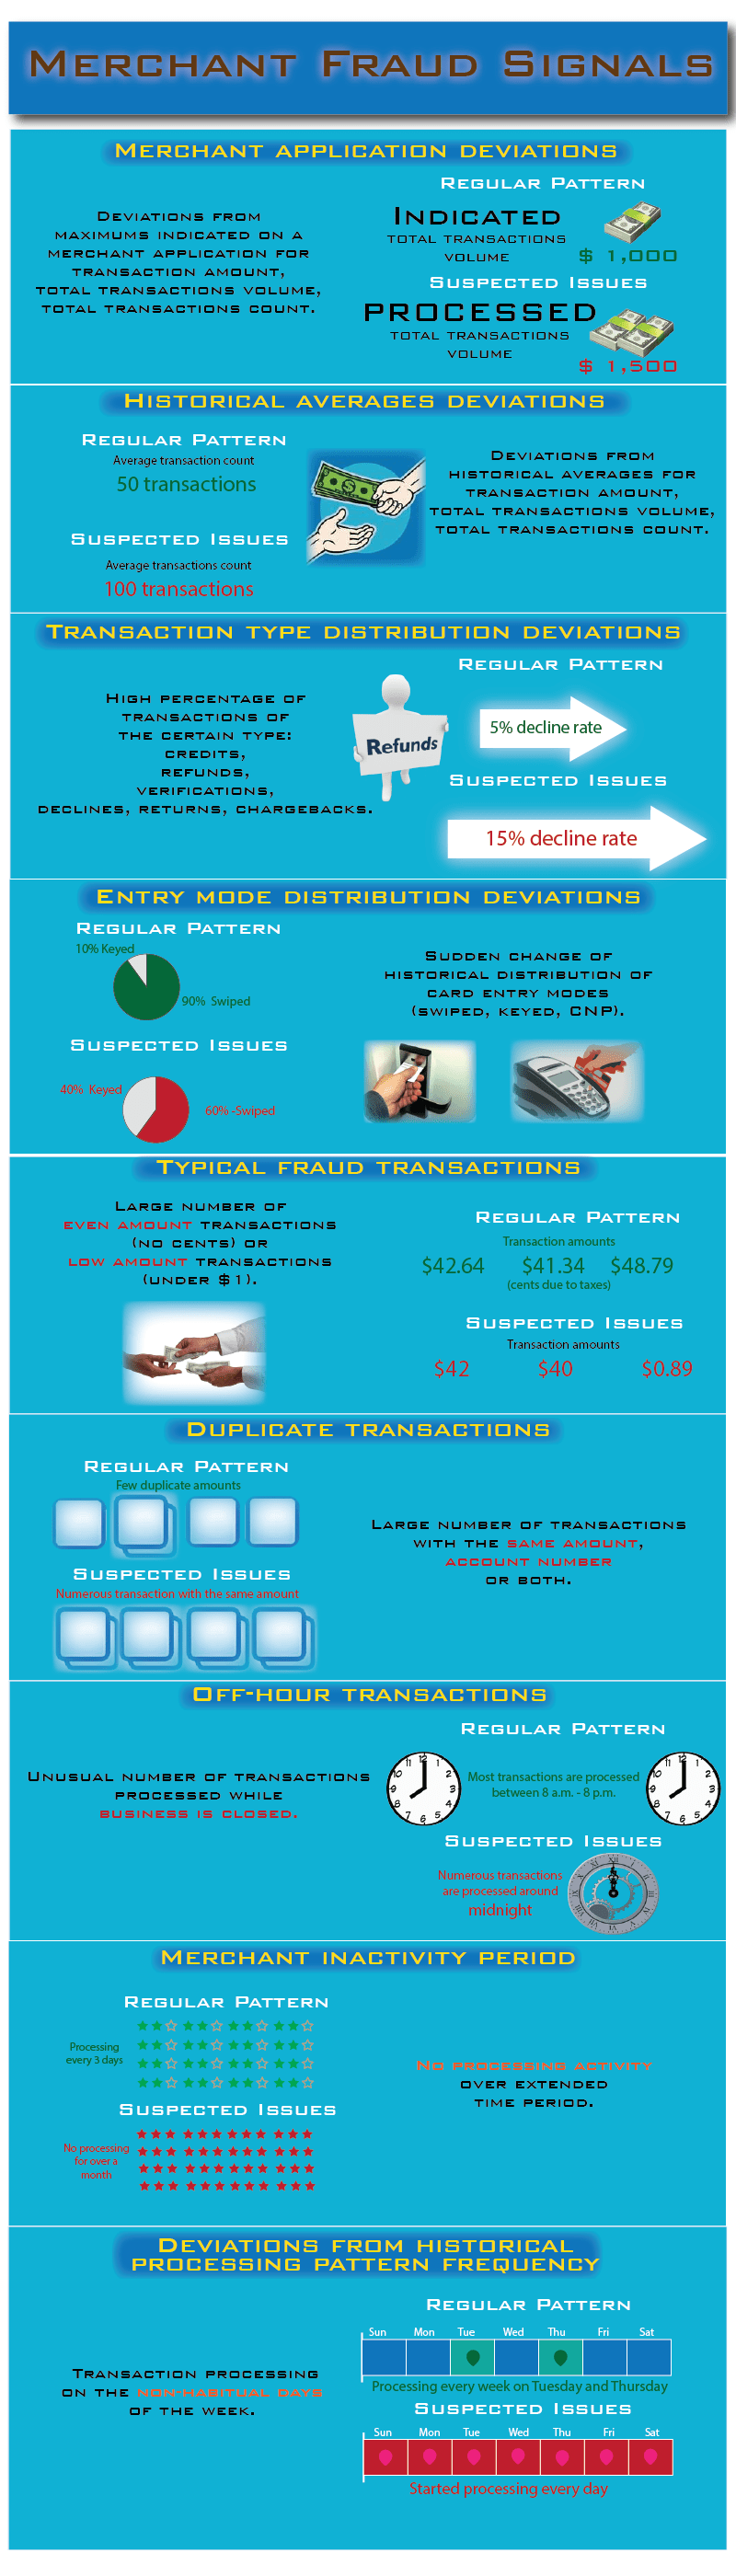 Visualizing Merchant Fraud Signals